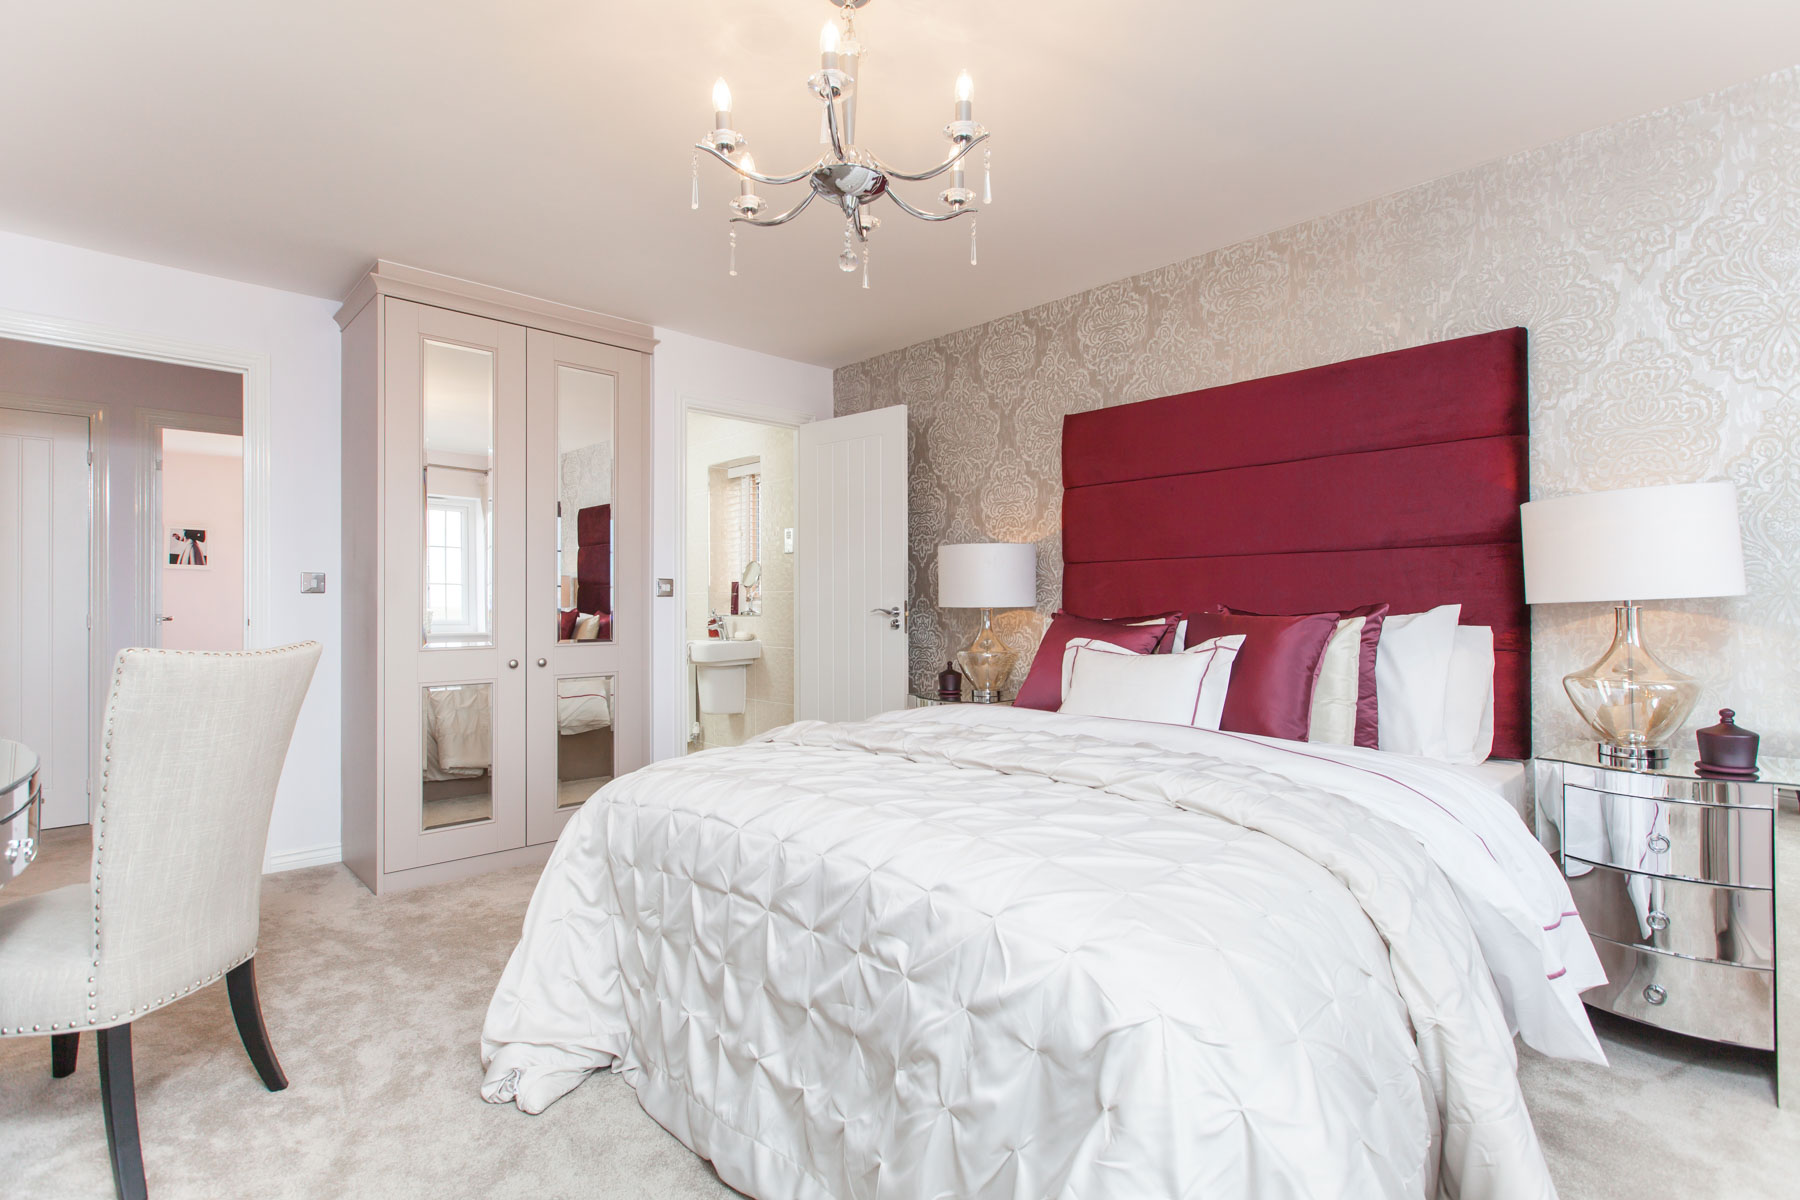 TW Yorkshire_The_Wickets_PD411_Haddenham_Bedroom_1_2